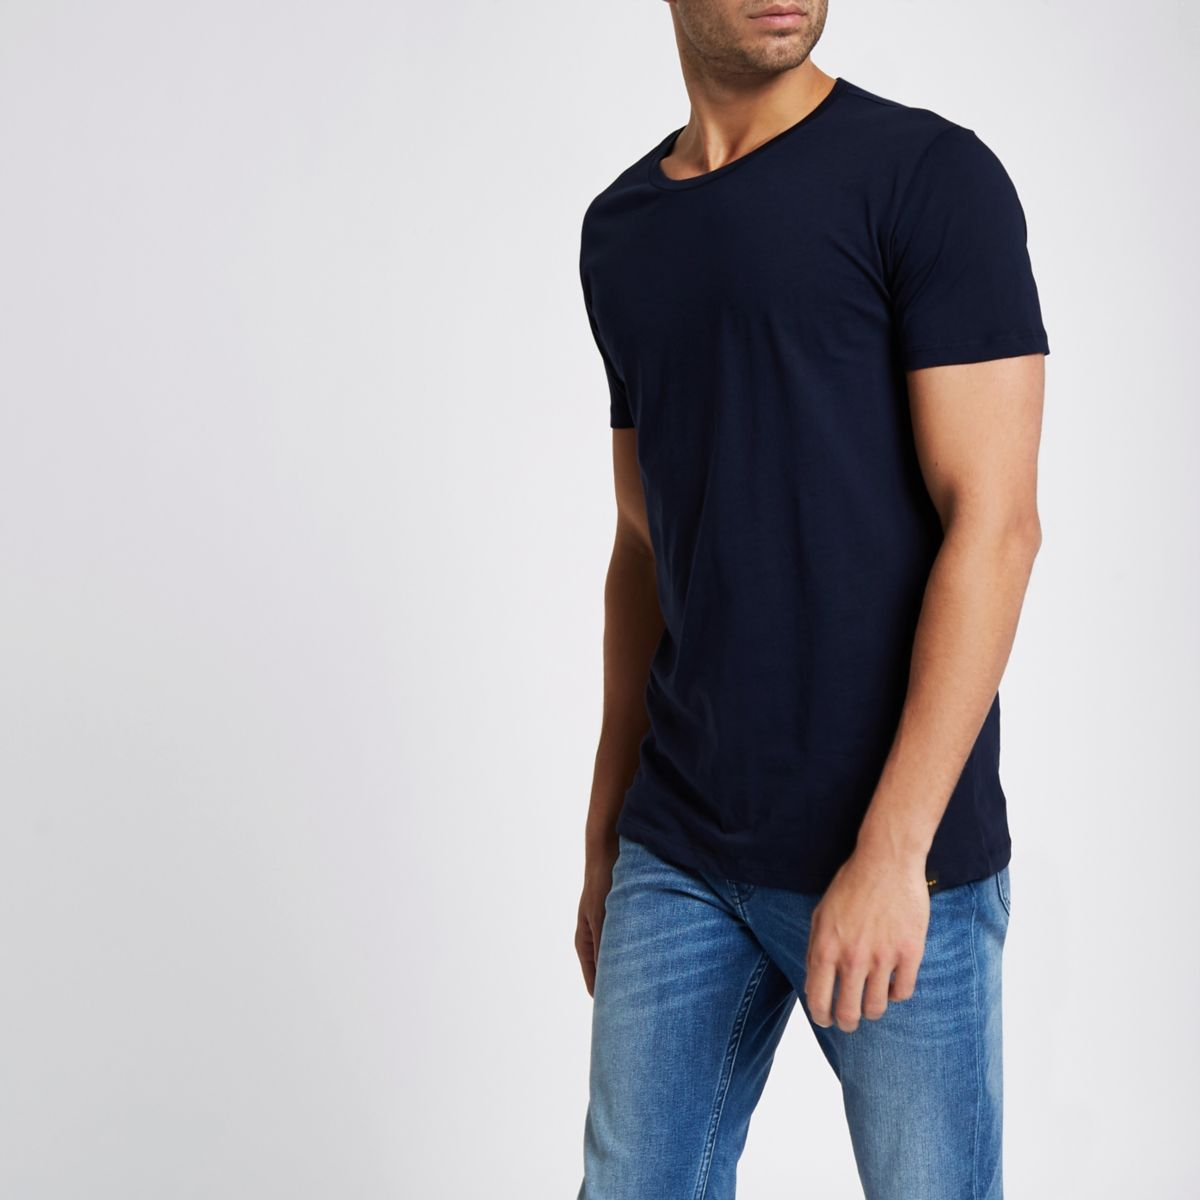 Lee navy crew neck short sleeve T-shirt